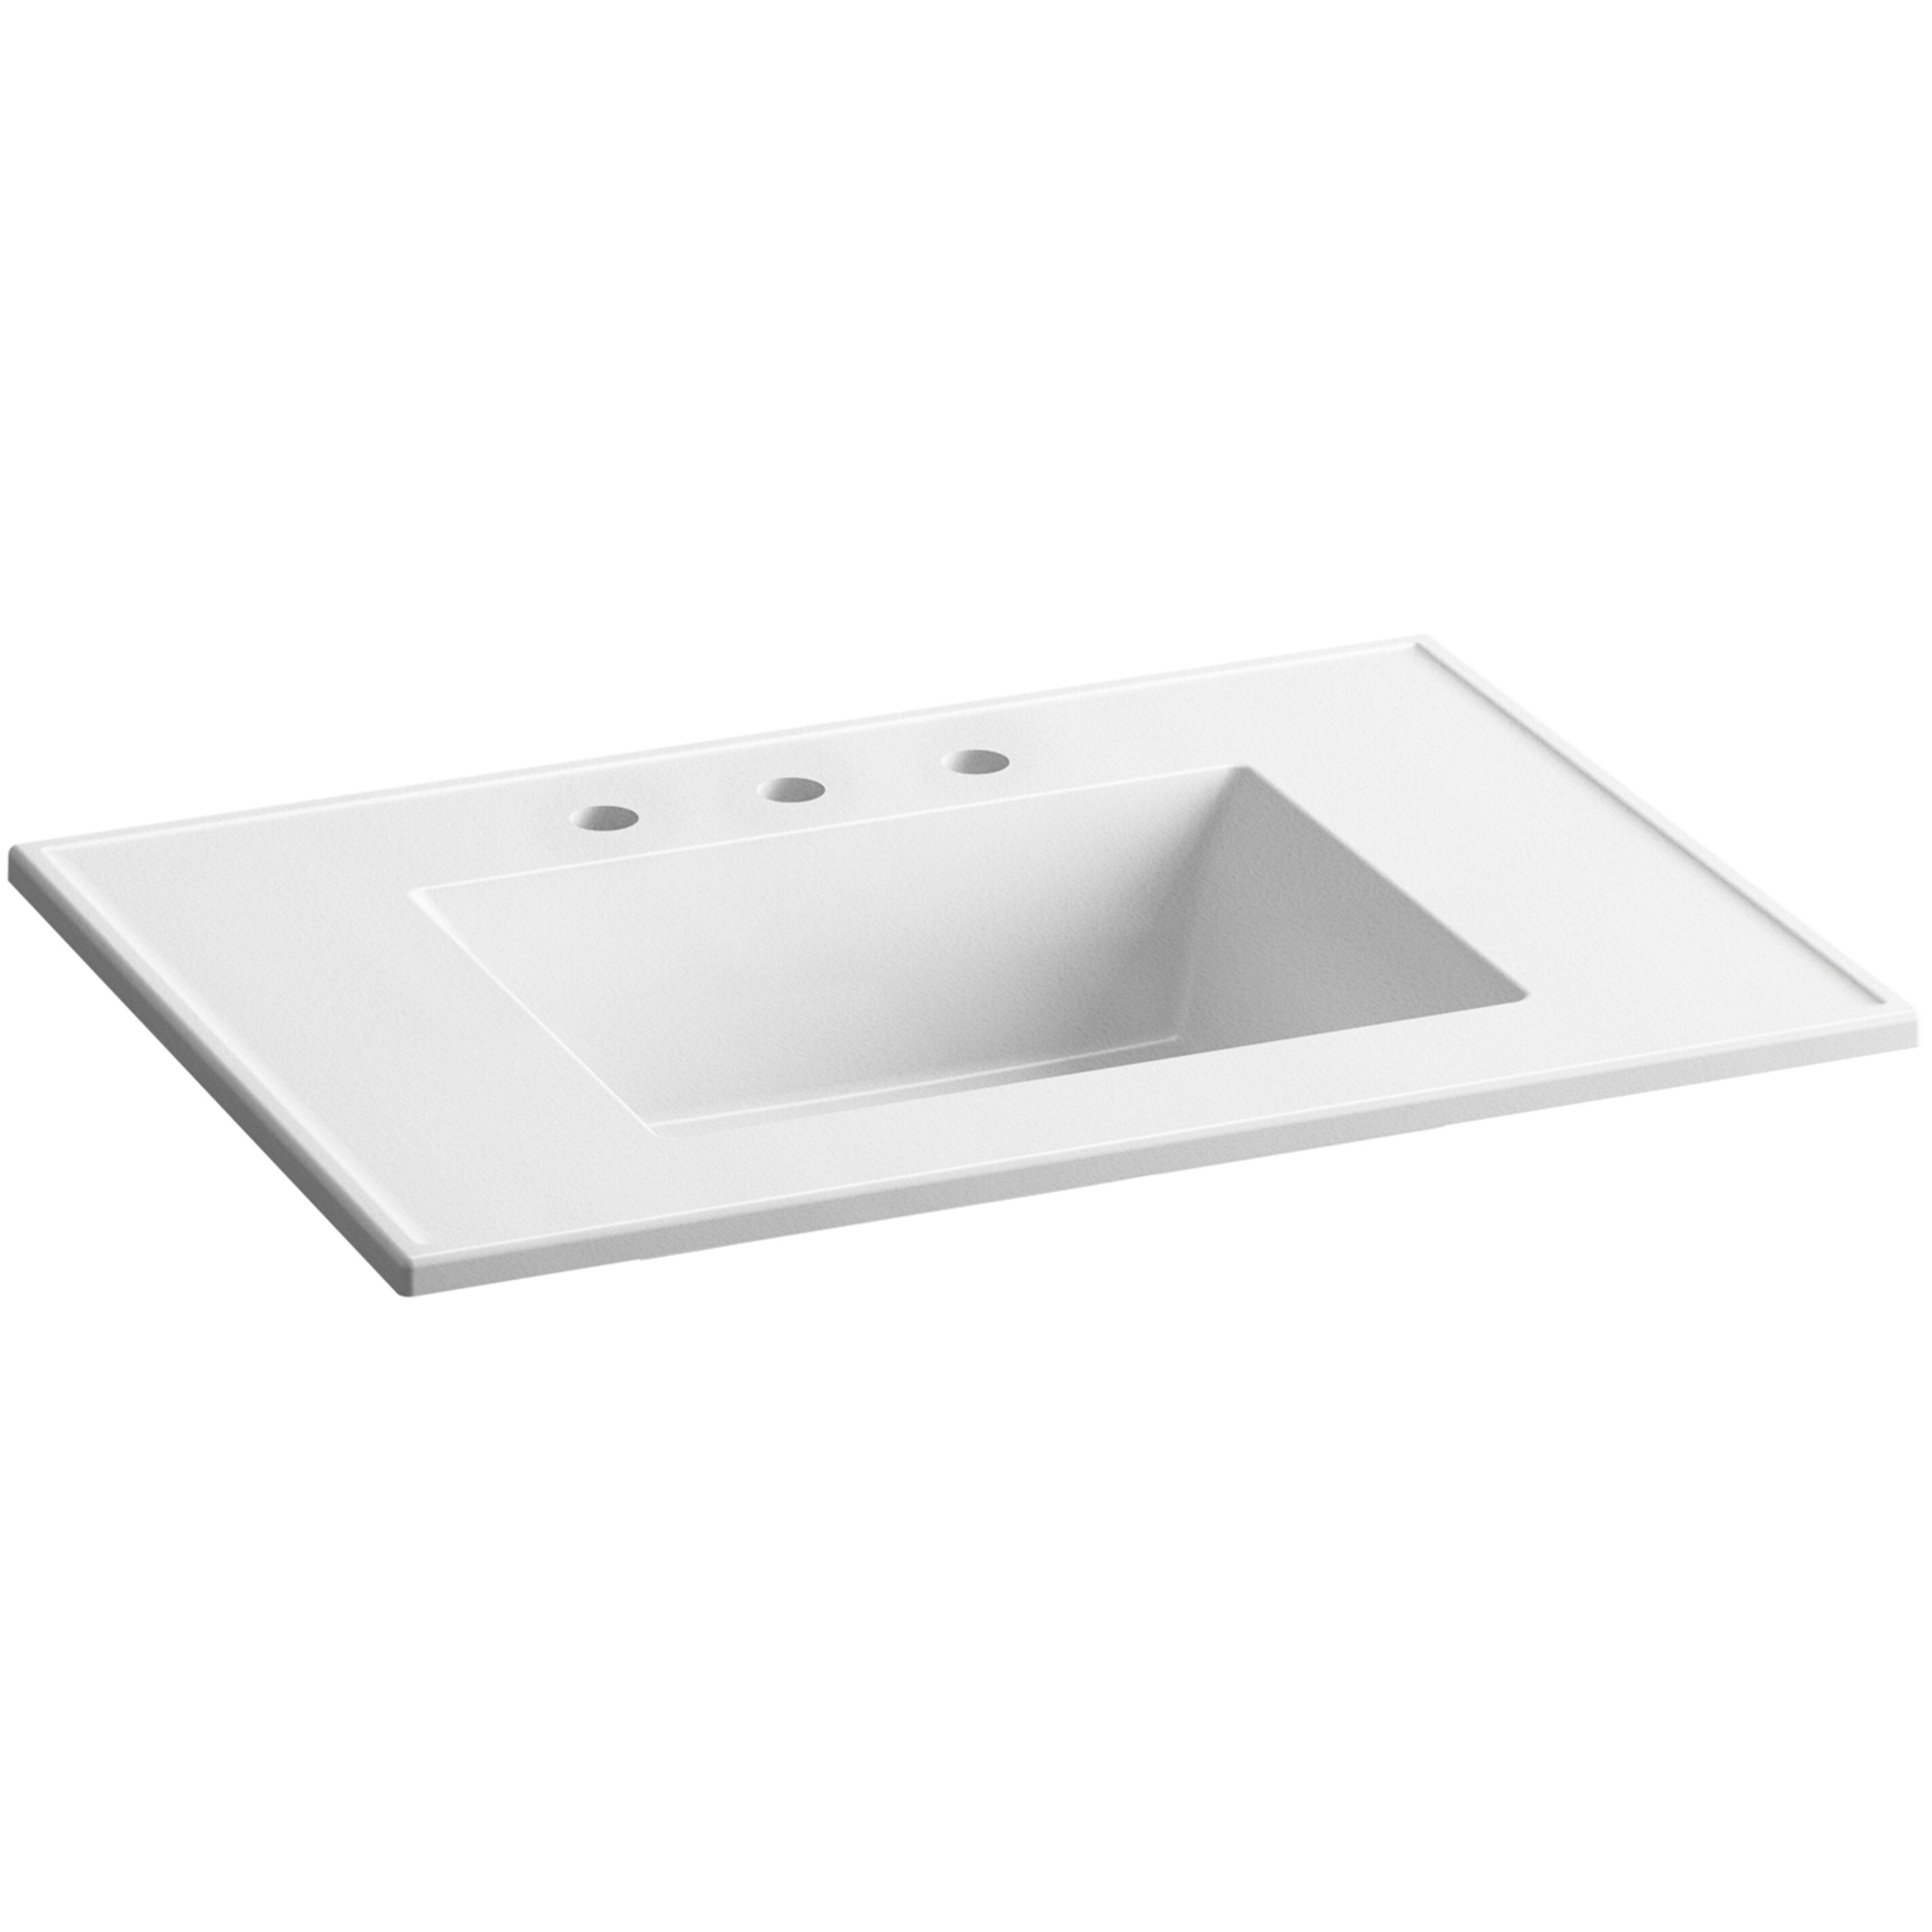 Kohler Ceramic Impressions 31 Rectangular Vanity Top Bathroom Sink With 8 Widespread Faucet